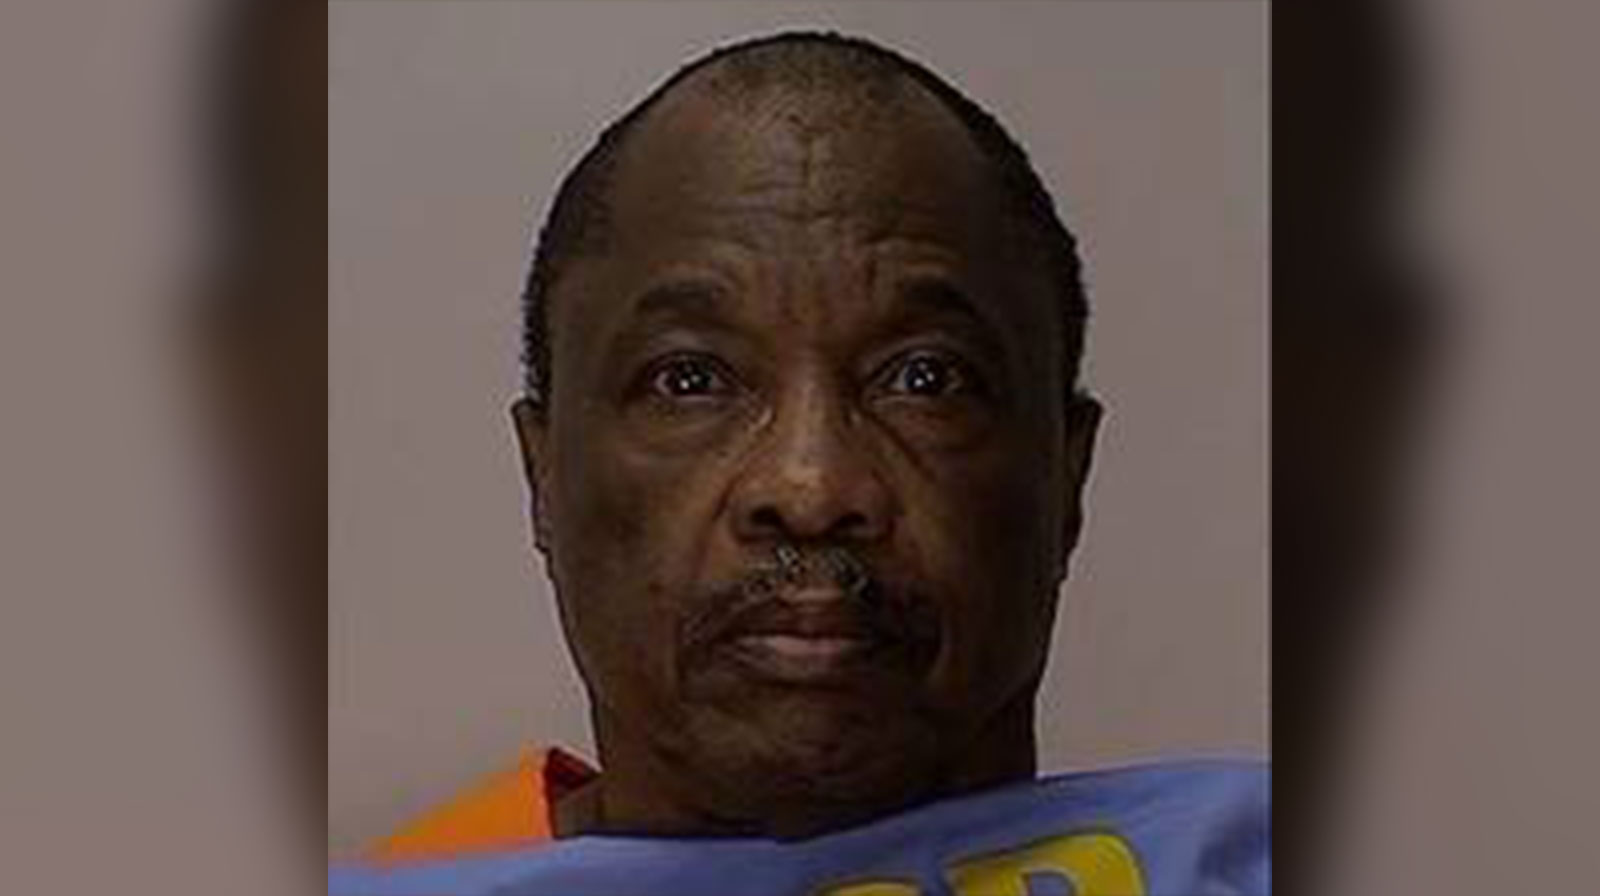 Convicted serial killer known as the 'Grim Sleeper' found dead in prison cell